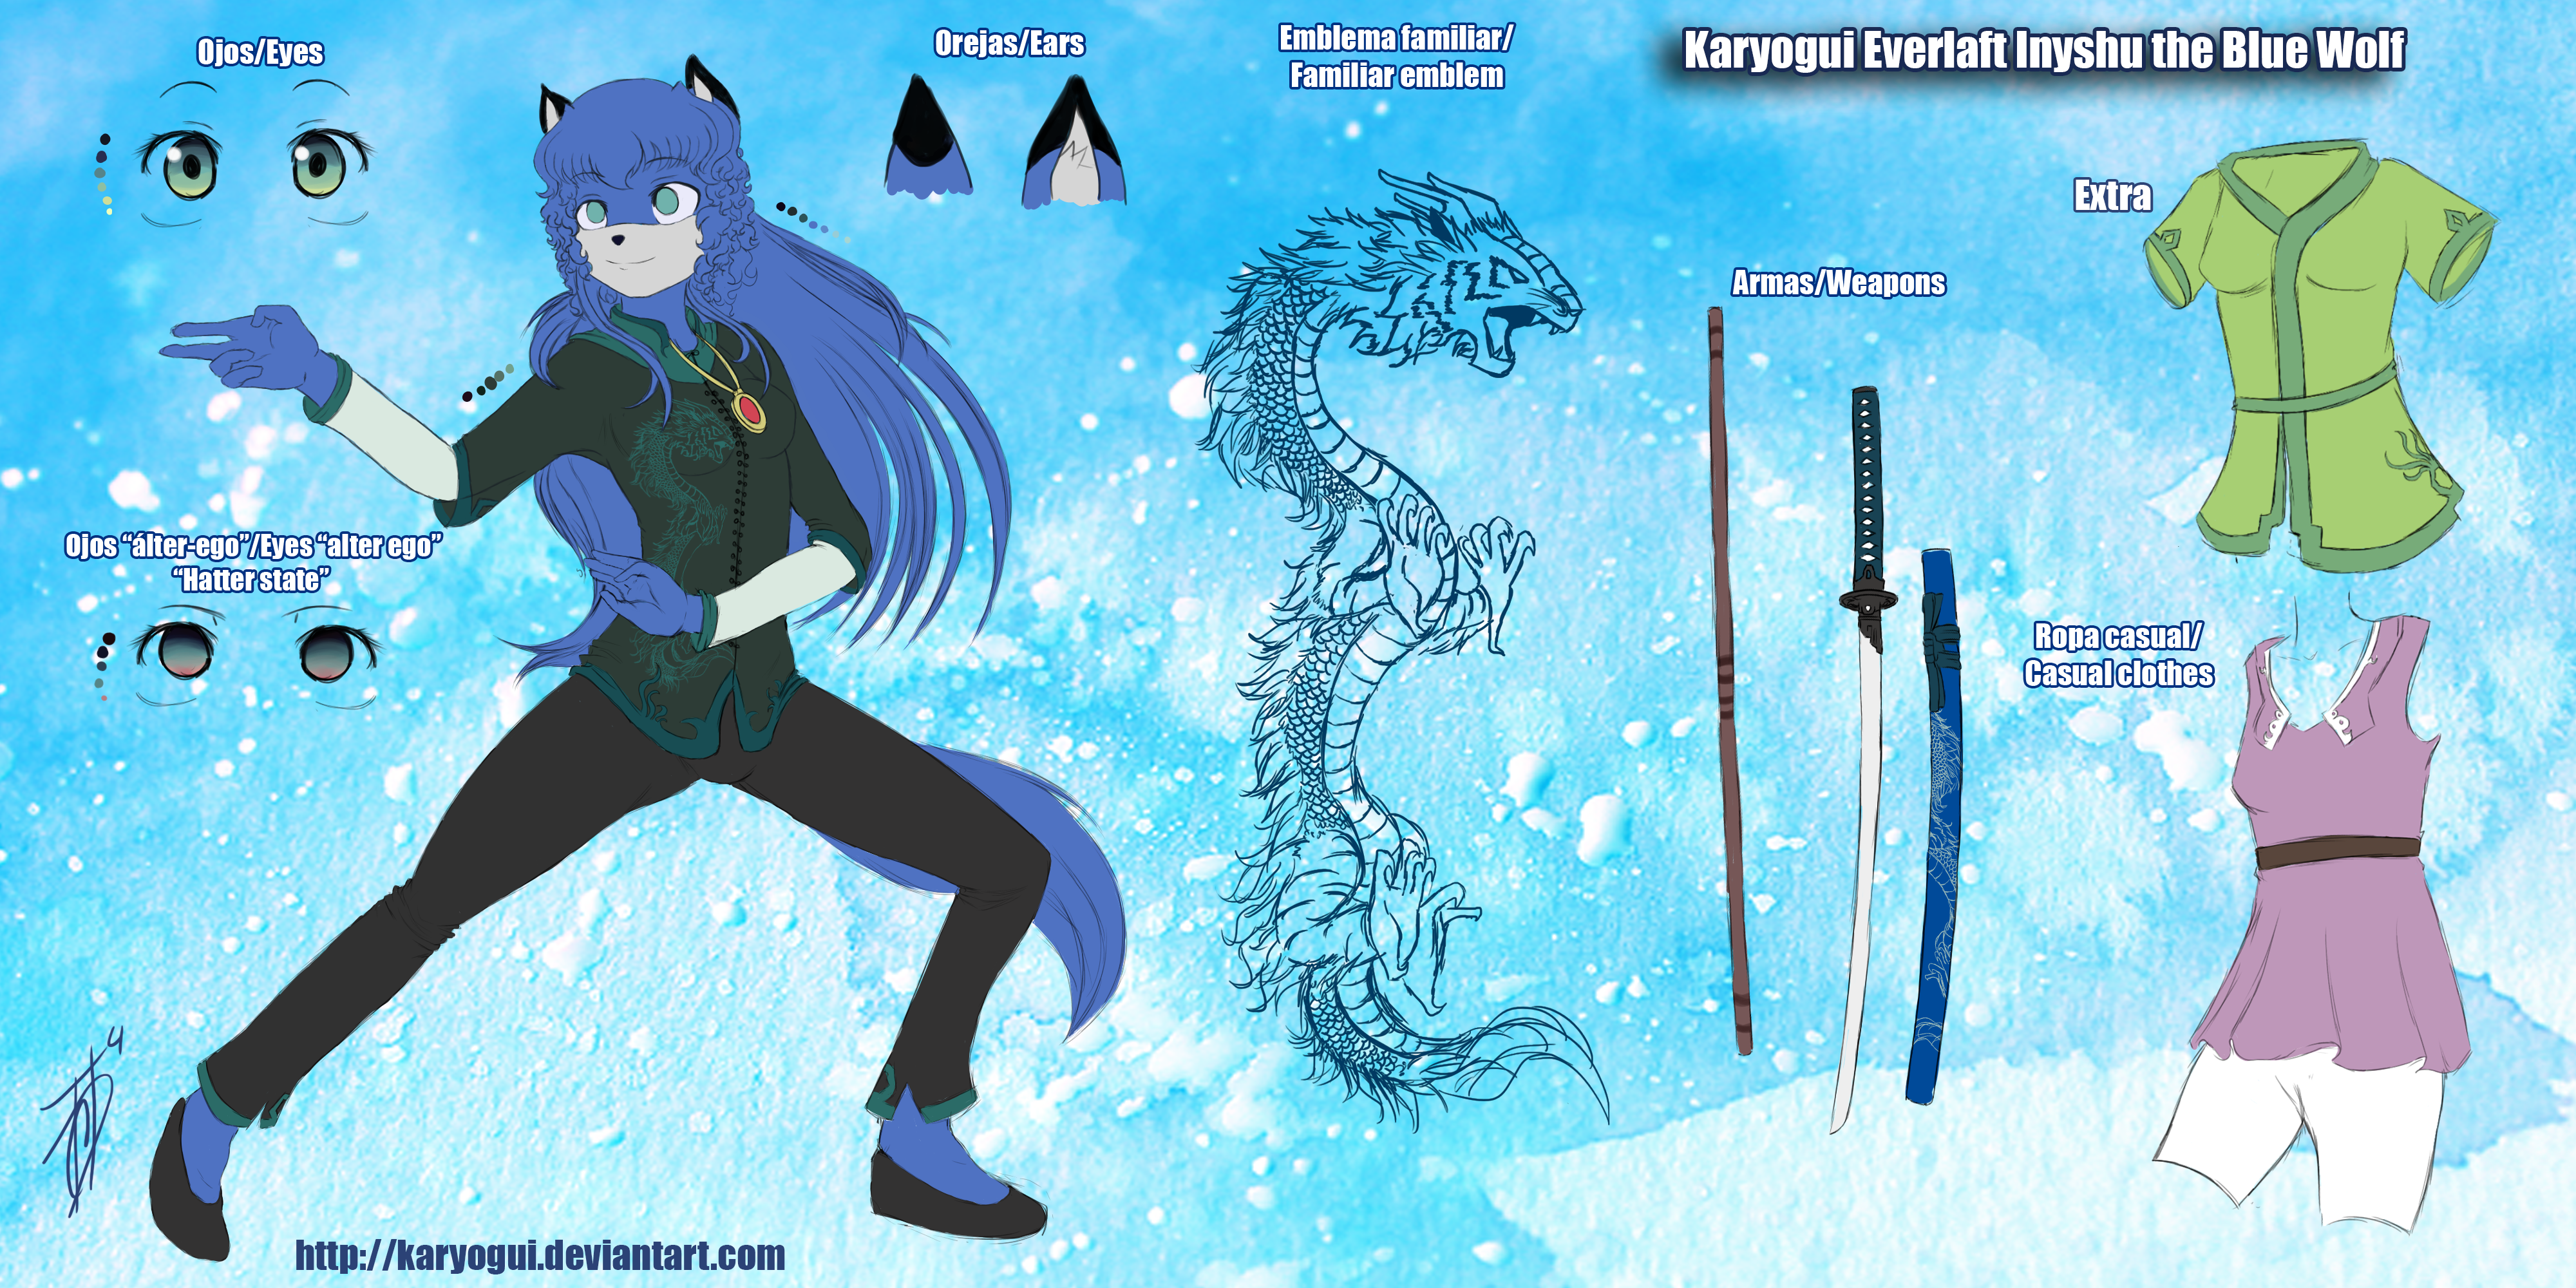 Karyogui Everlaft Inyshu the Blue Wolf by Karyogui